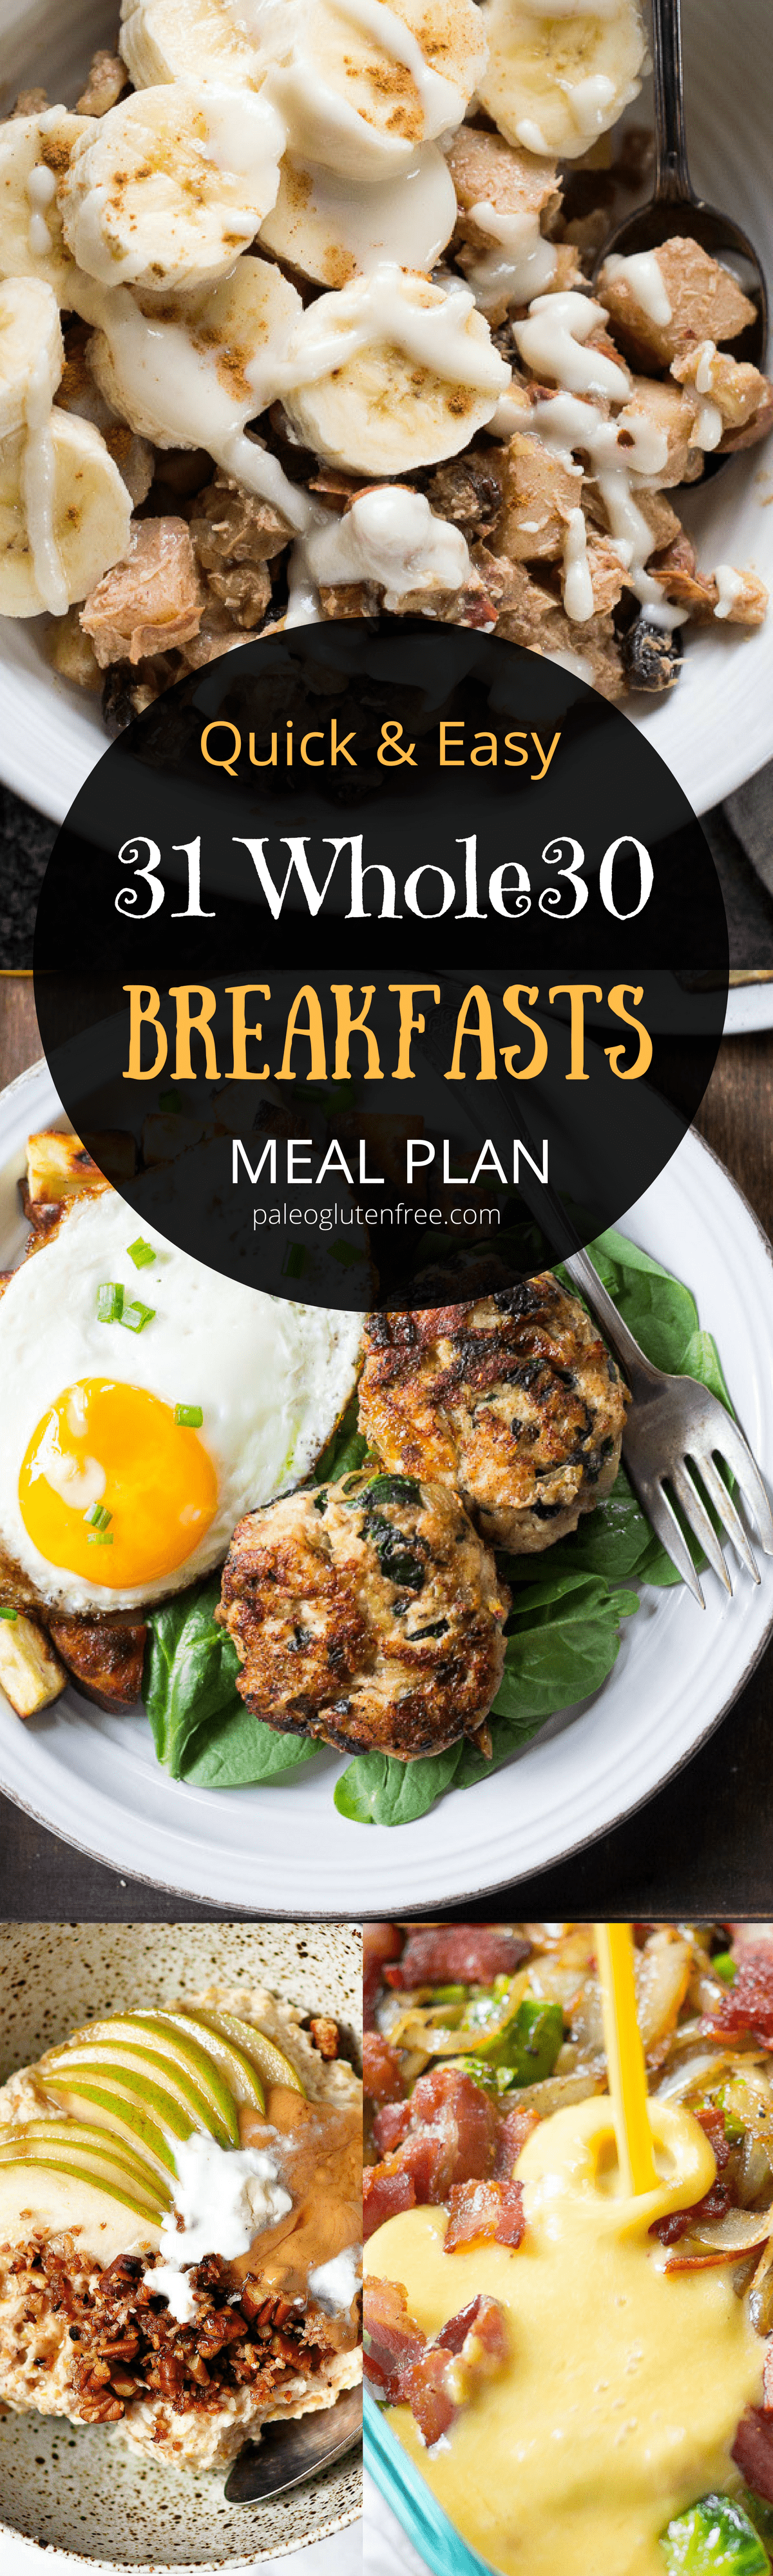 31 Best Whole30 Breakfast Recipes - Paleo Gluten Free Eats